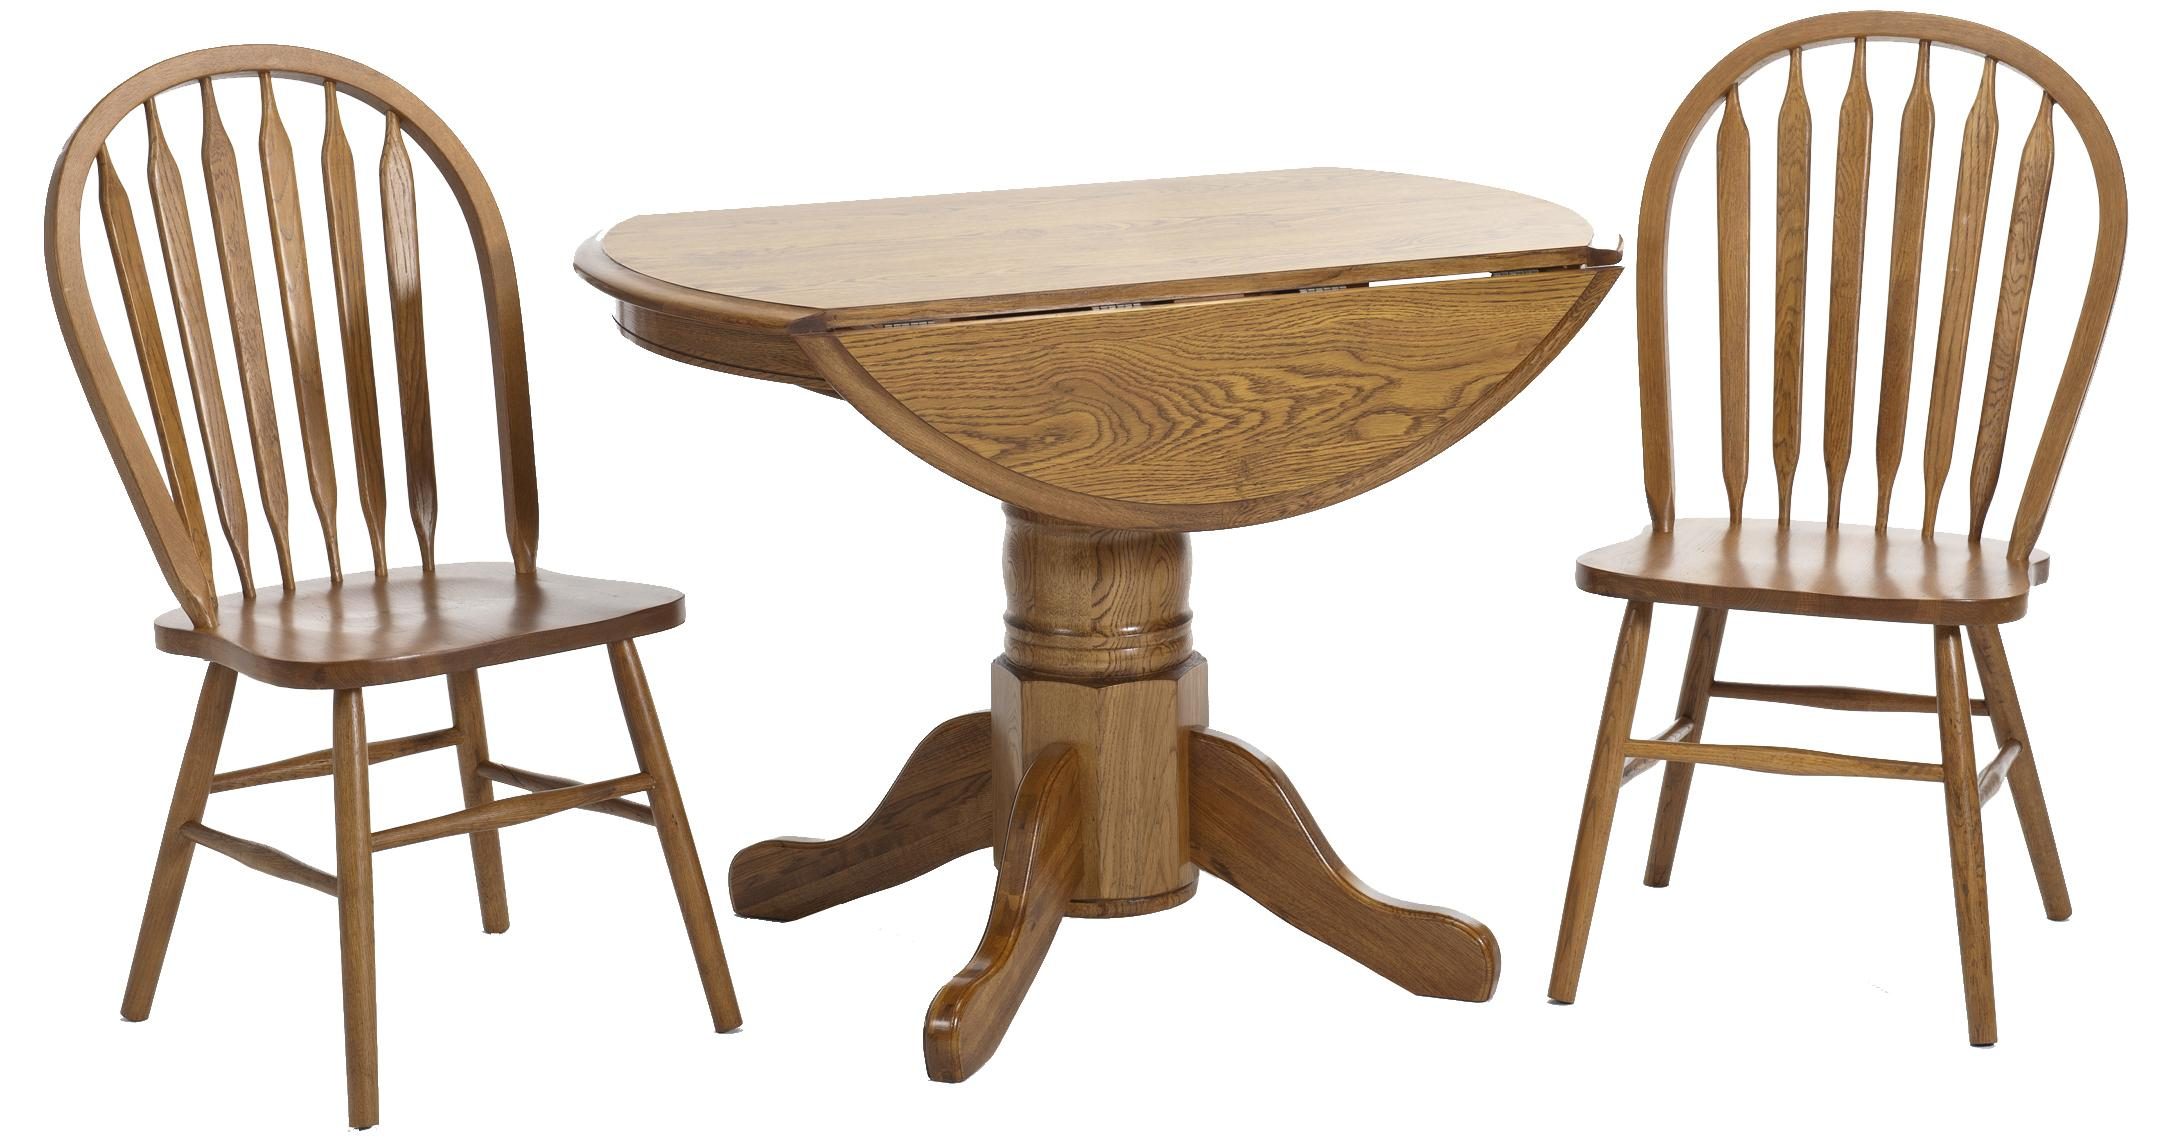 Intercon Classic Oak Three Piece Drop Leaf Table and Chair  : products2Fintercon2Fcolor2Fclassic20oak20coco ta i42d cnt bse2Btop2B2xch 253sh b from www.hudsonsfurniture.com size 2174 x 1139 jpeg 218kB